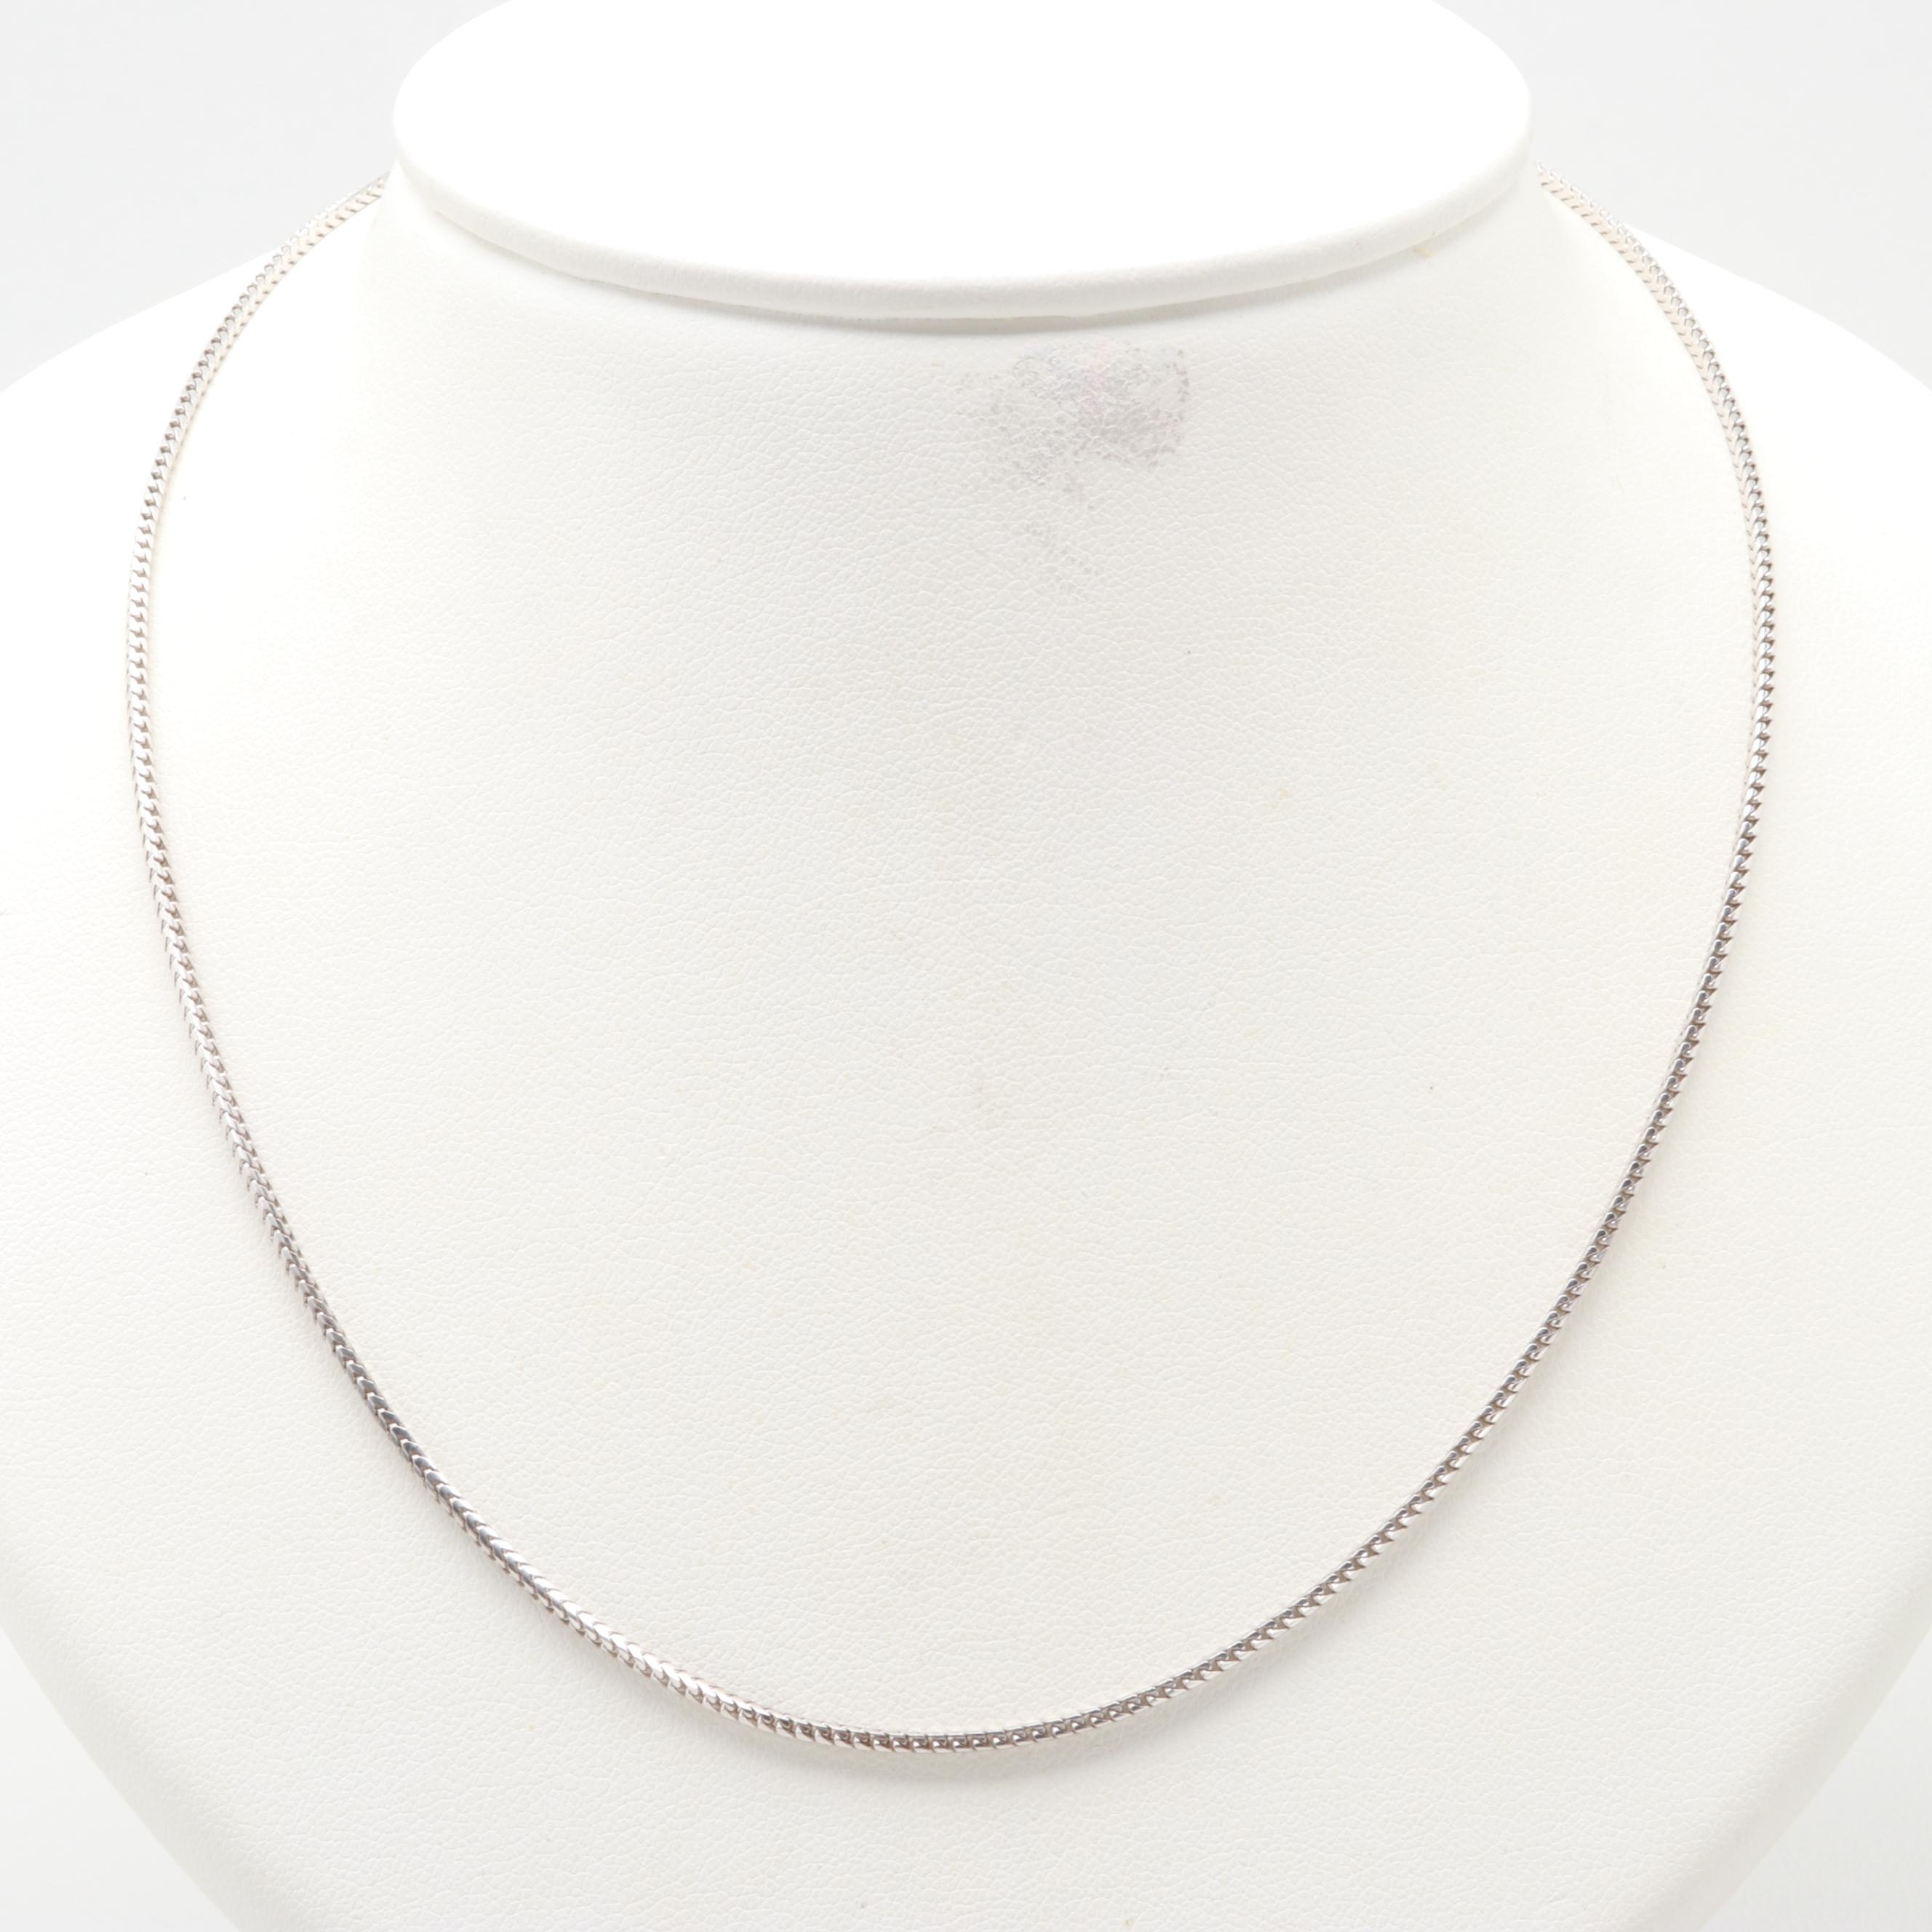 14K White Gold Fancy Link Necklace